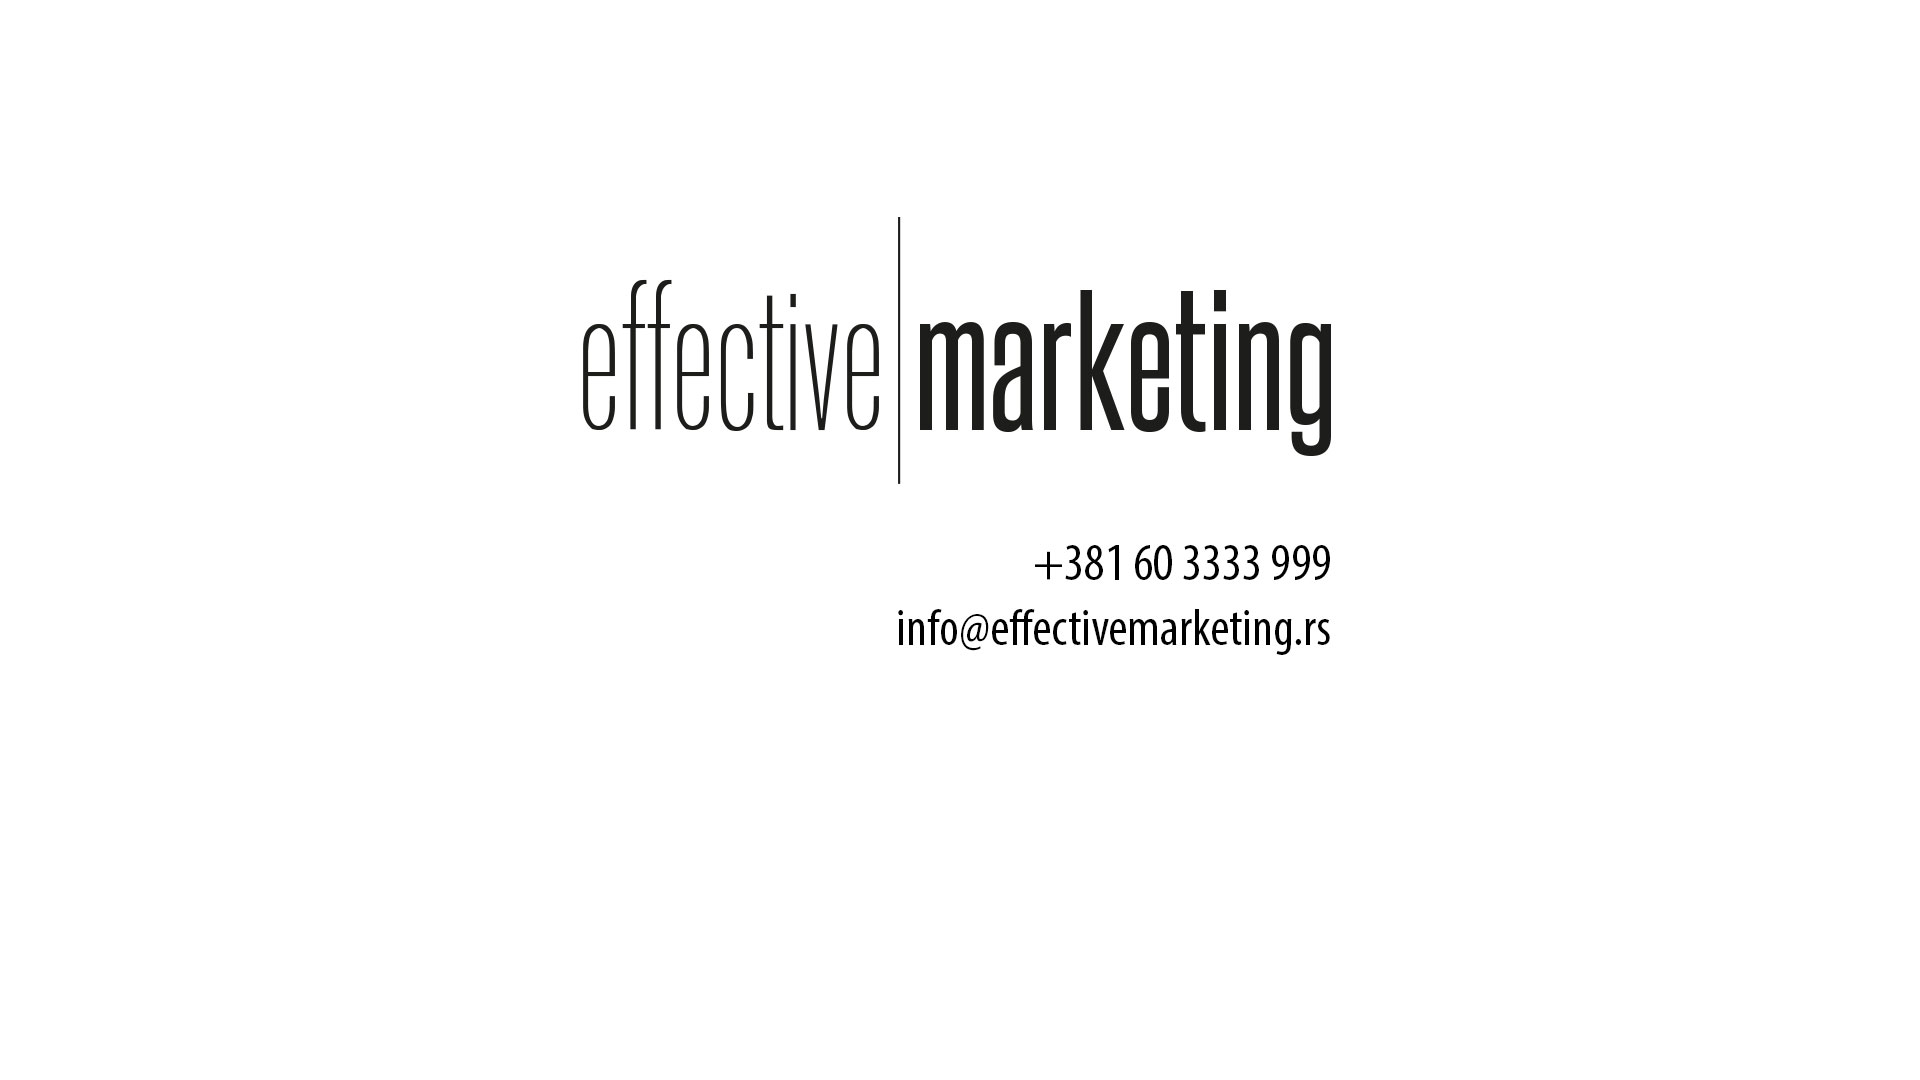 Effective Marketing - marketing agencija